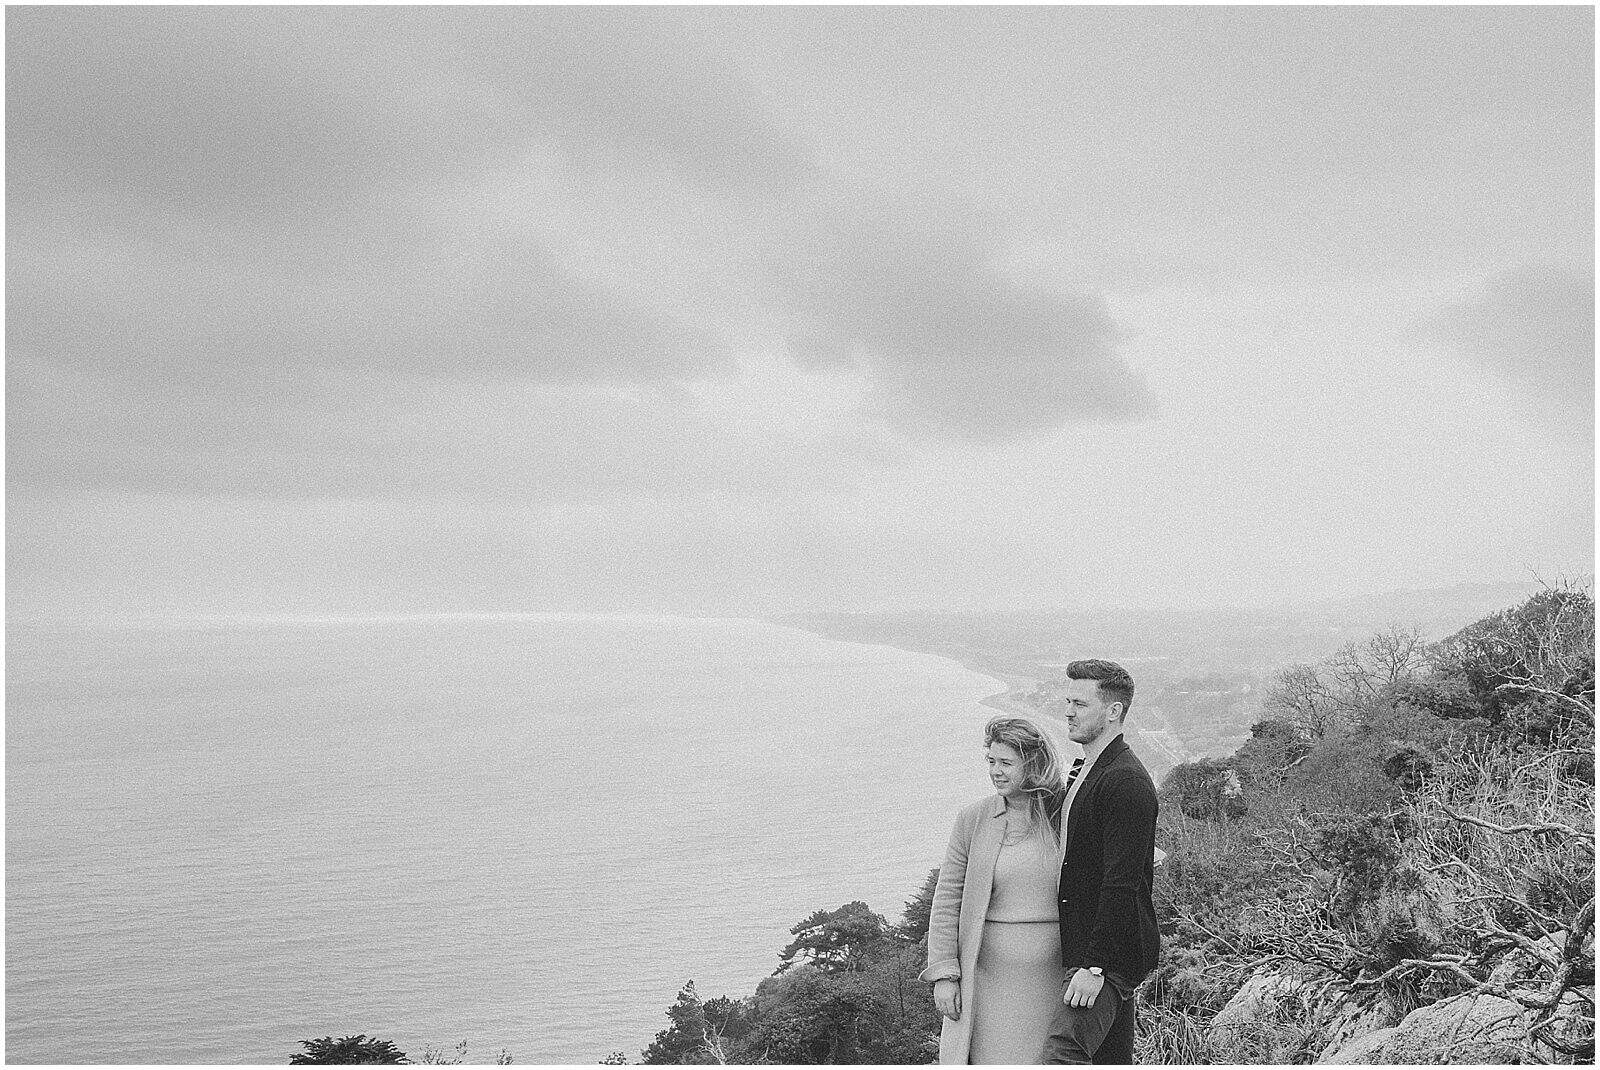 Caragh and Declan went up to Killiney Hill 3